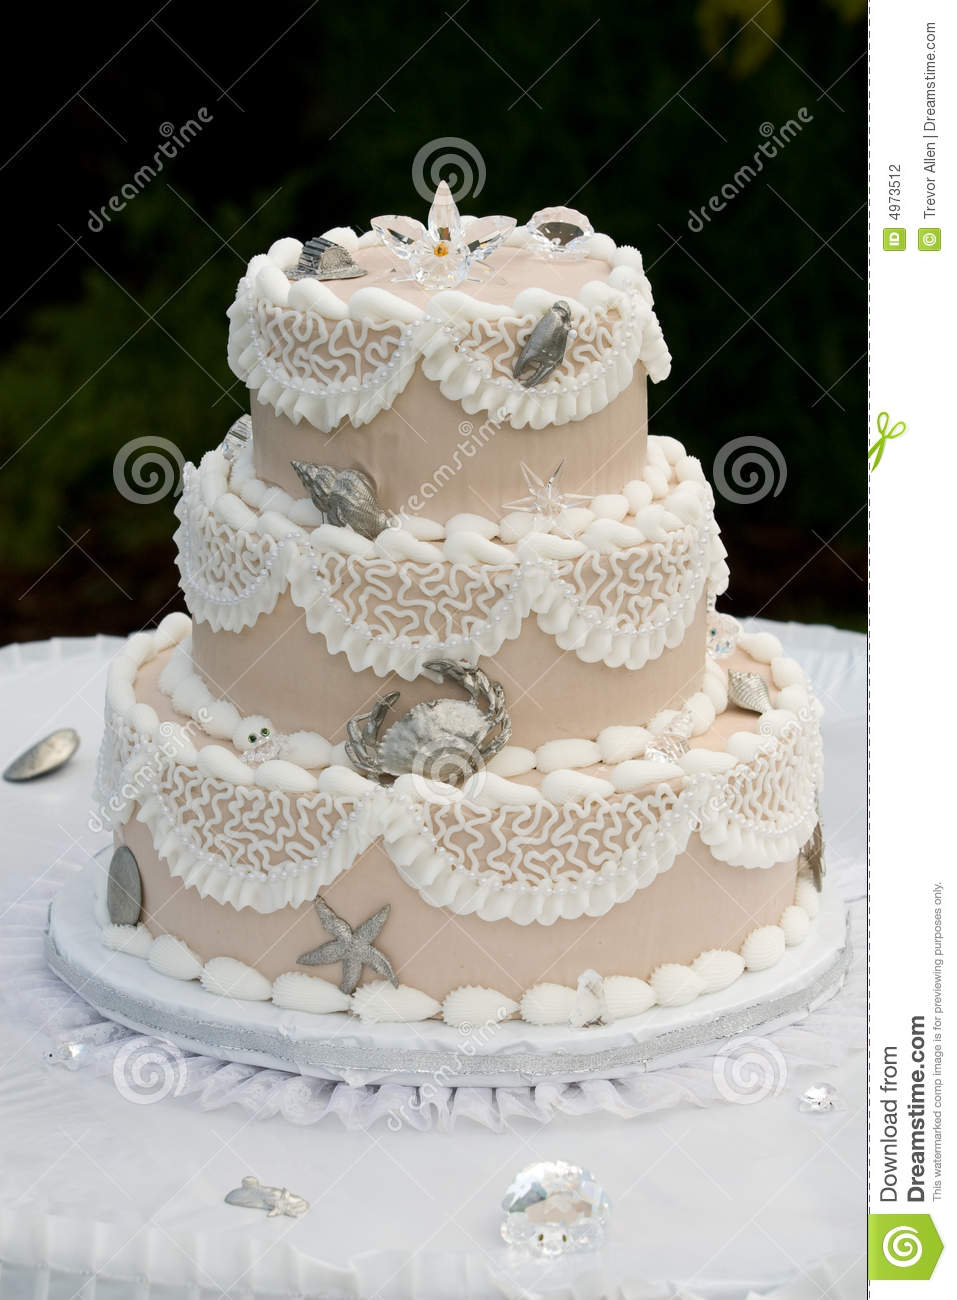 unusual wedding cakes images unique wedding cake stock photo image of difficult cake 21491